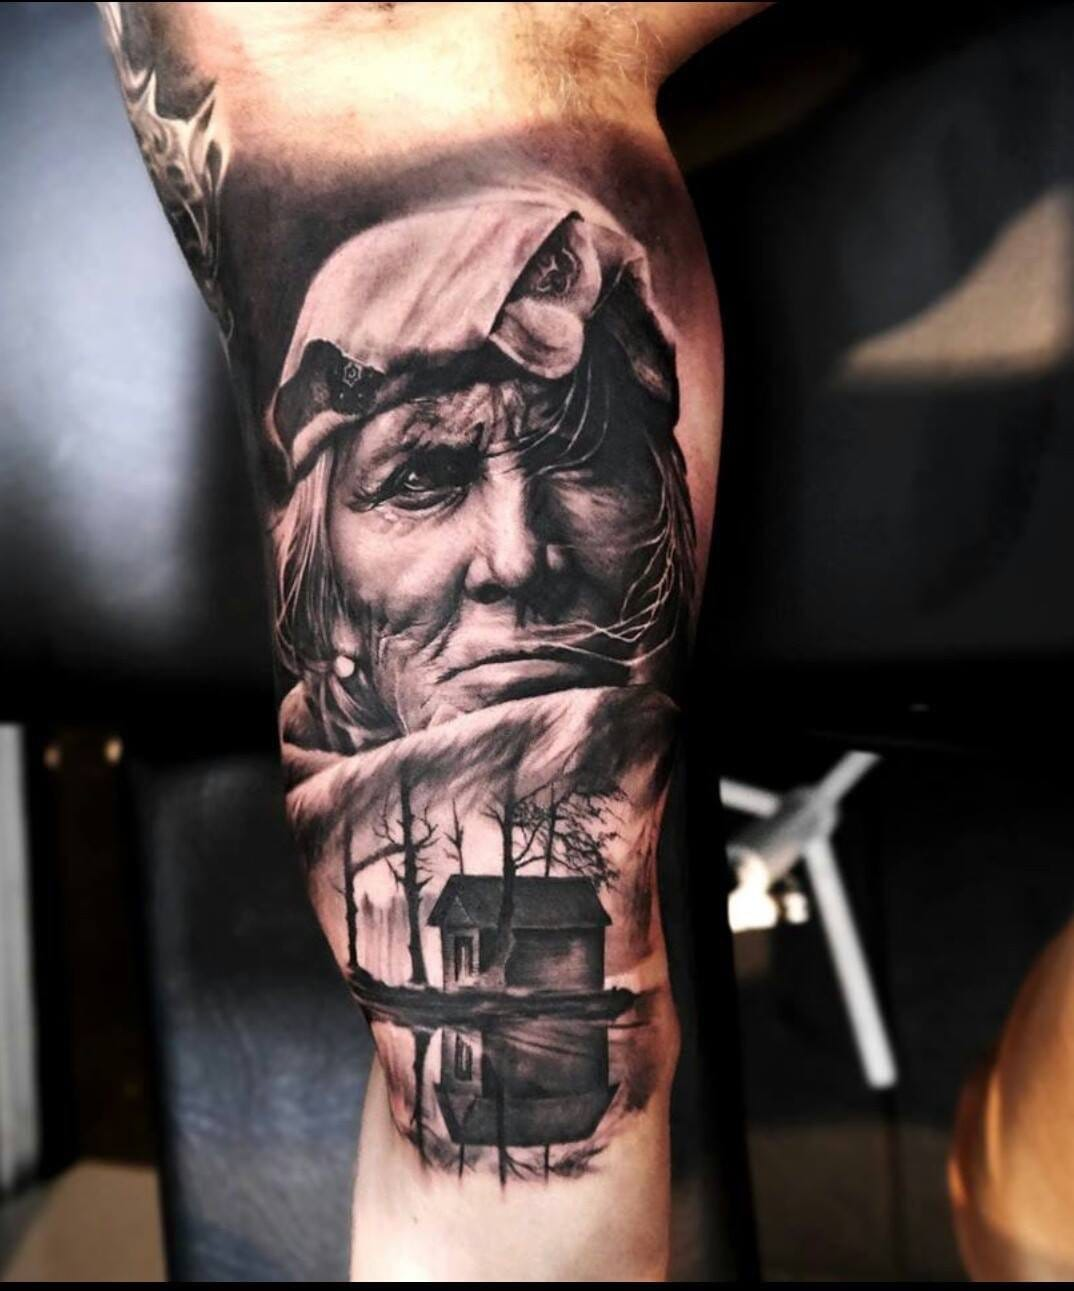 Creative and abstract tattoo by Oscar Akermo